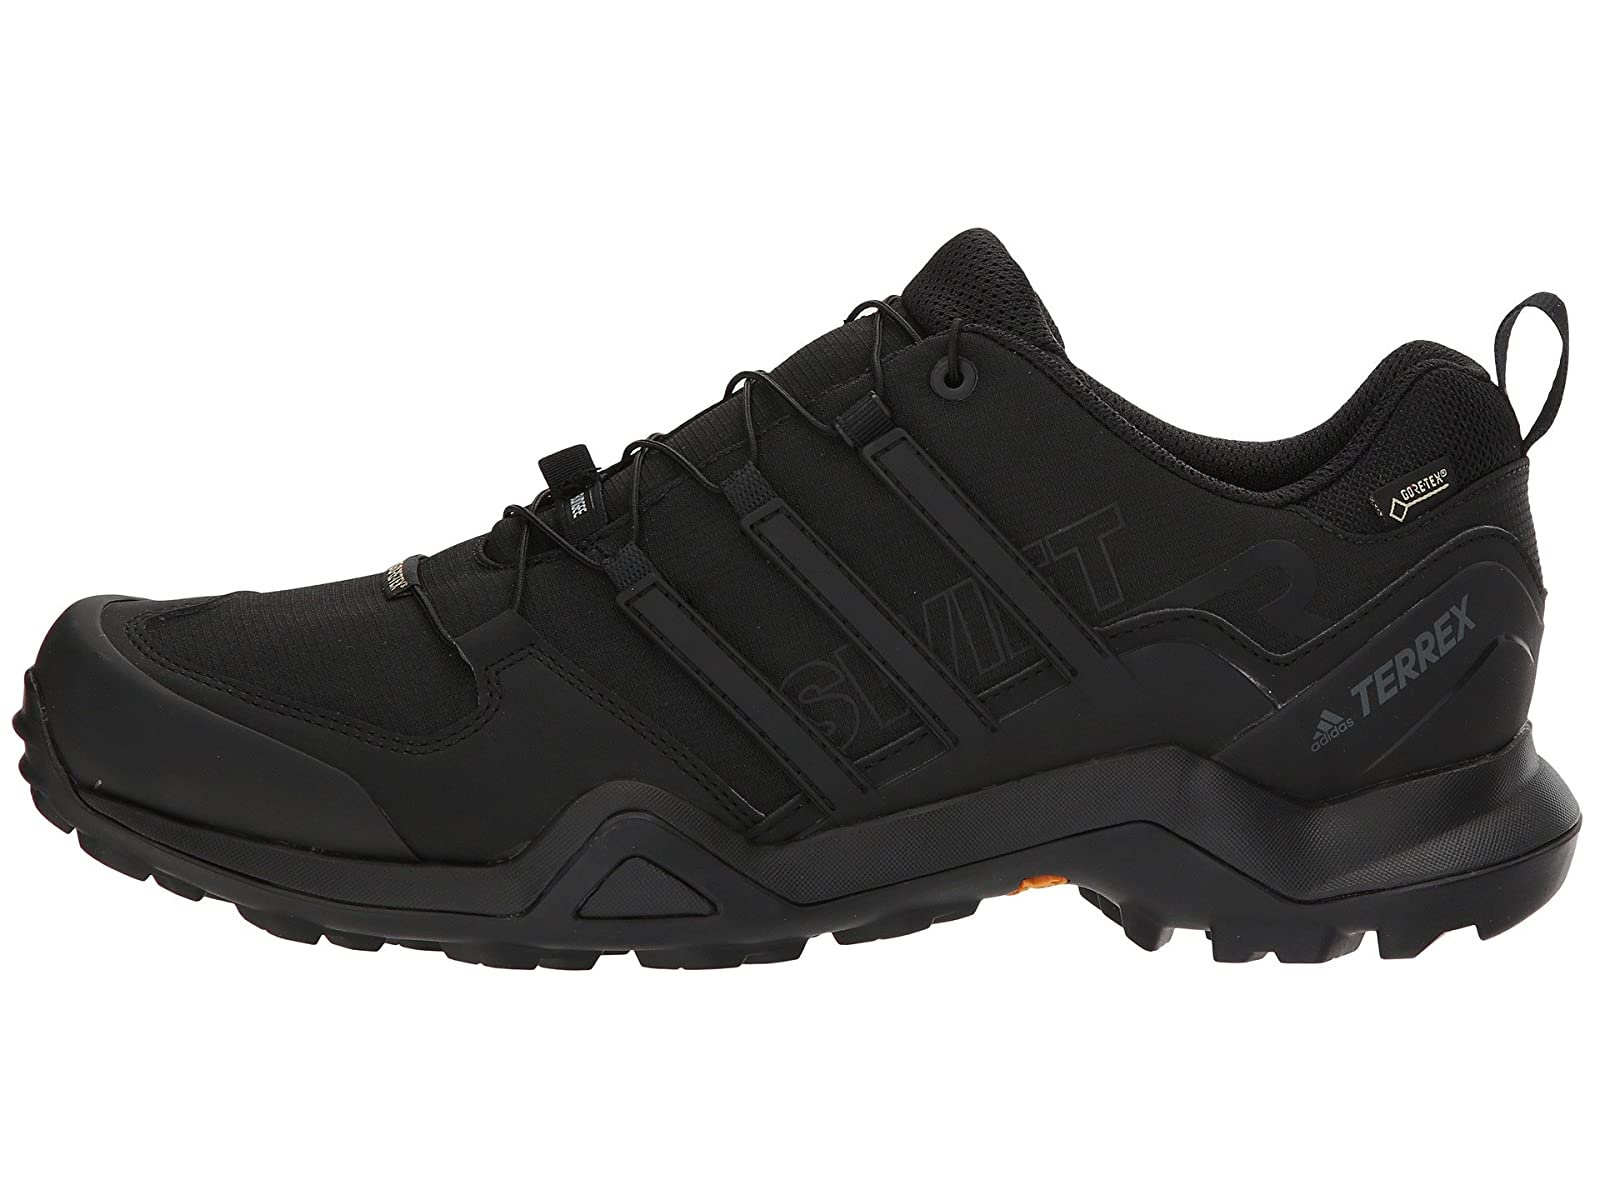 Man-039-s-Sneakers-amp-Athletic-Shoes-adidas-Outdoor-Terrex-Swift-R2-GTX thumbnail 5